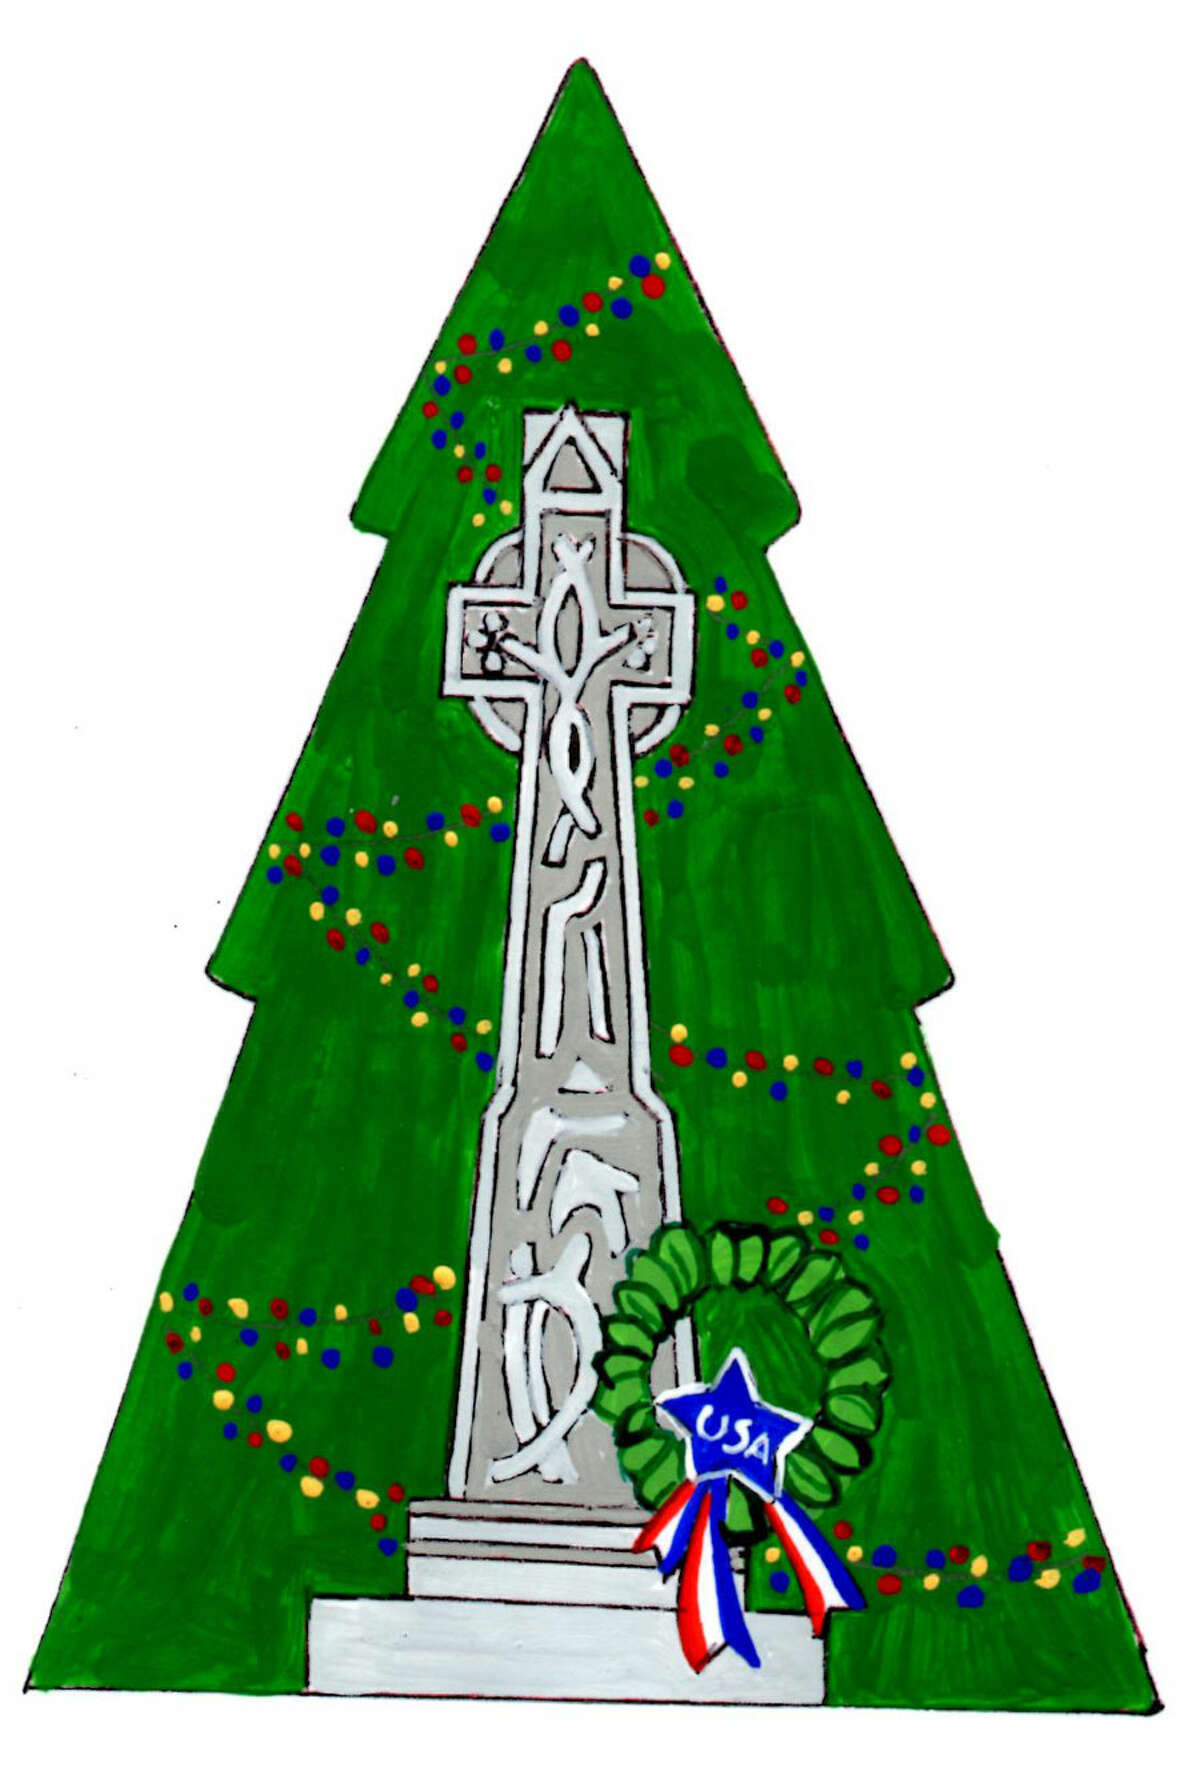 Illustration for Wayside Cross ornament. Inked details are added after the painting is completed. - Contributed photo